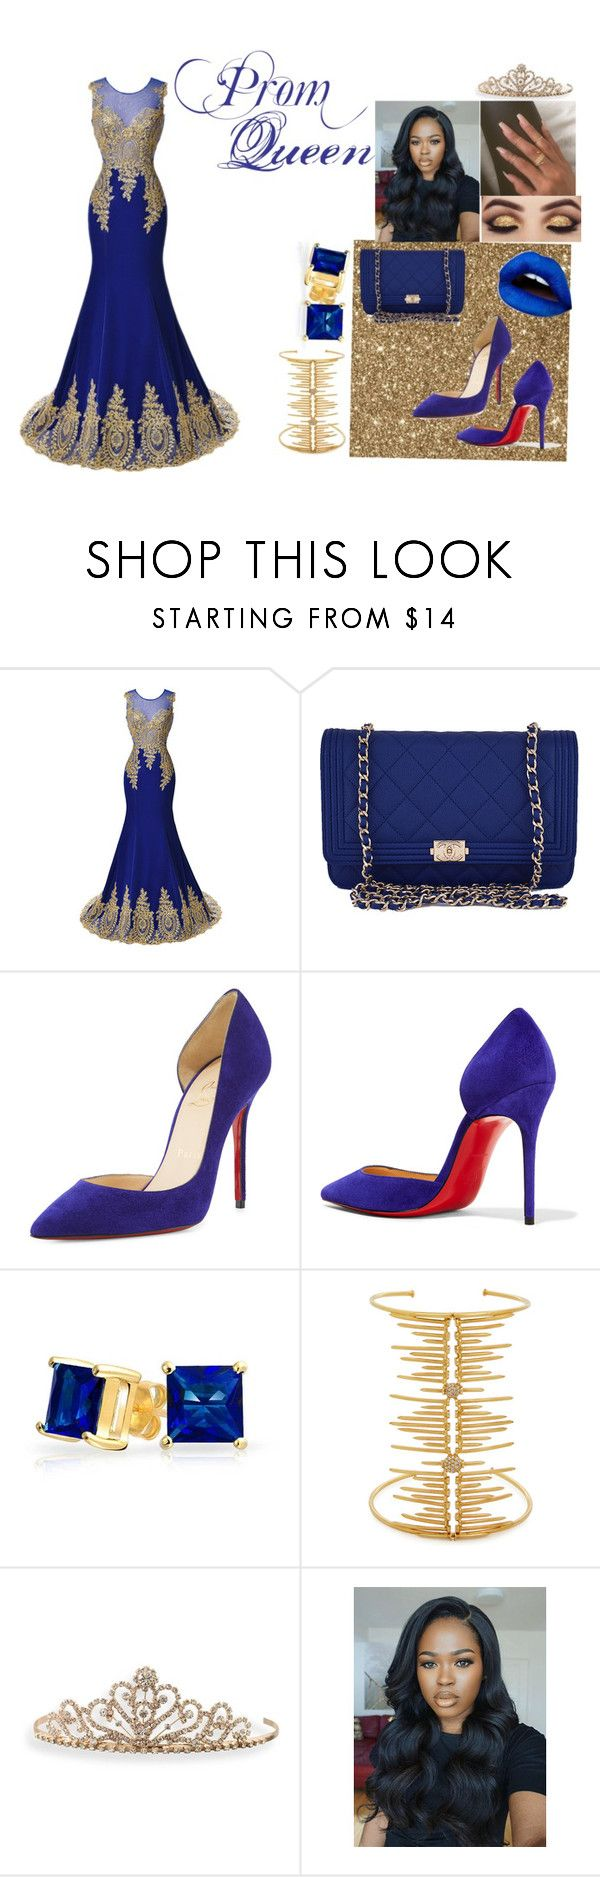 """""""Prom Queen👸🏾"""" by anaijaadvis ❤ liked on Polyvore featuring Chanel, Christian Louboutin, Bling Jewelry, Joanna Laura Constantine and BillyTheTree"""